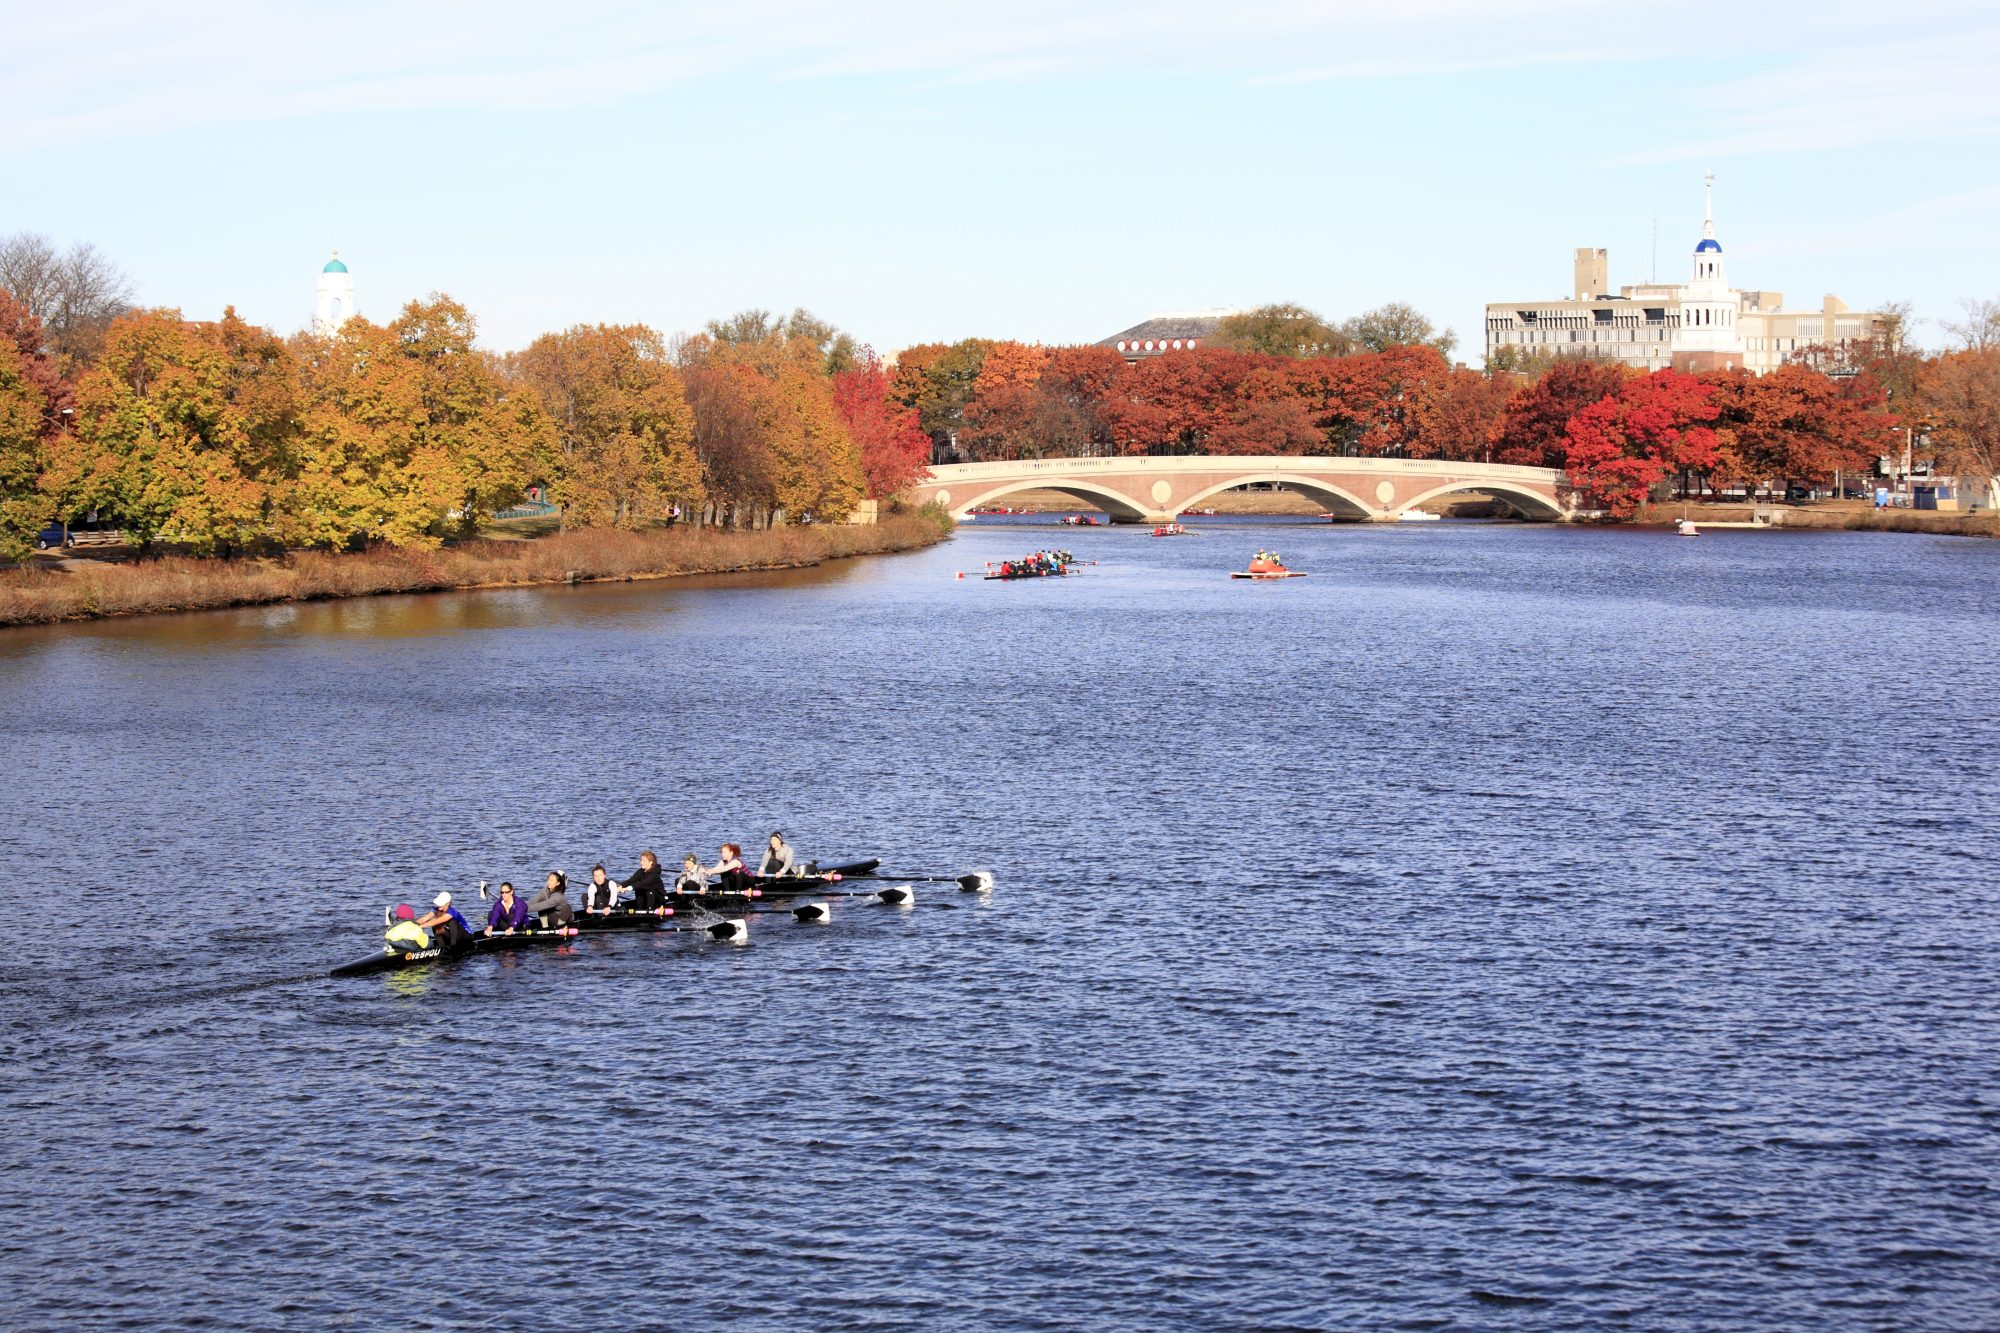 Rowing on the Charles River